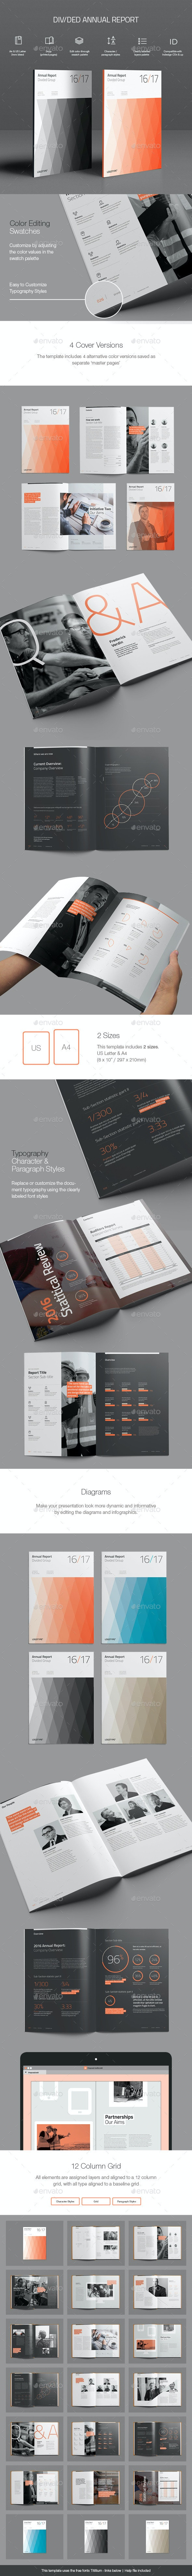 Divided Annual Report Template - Informational Brochures